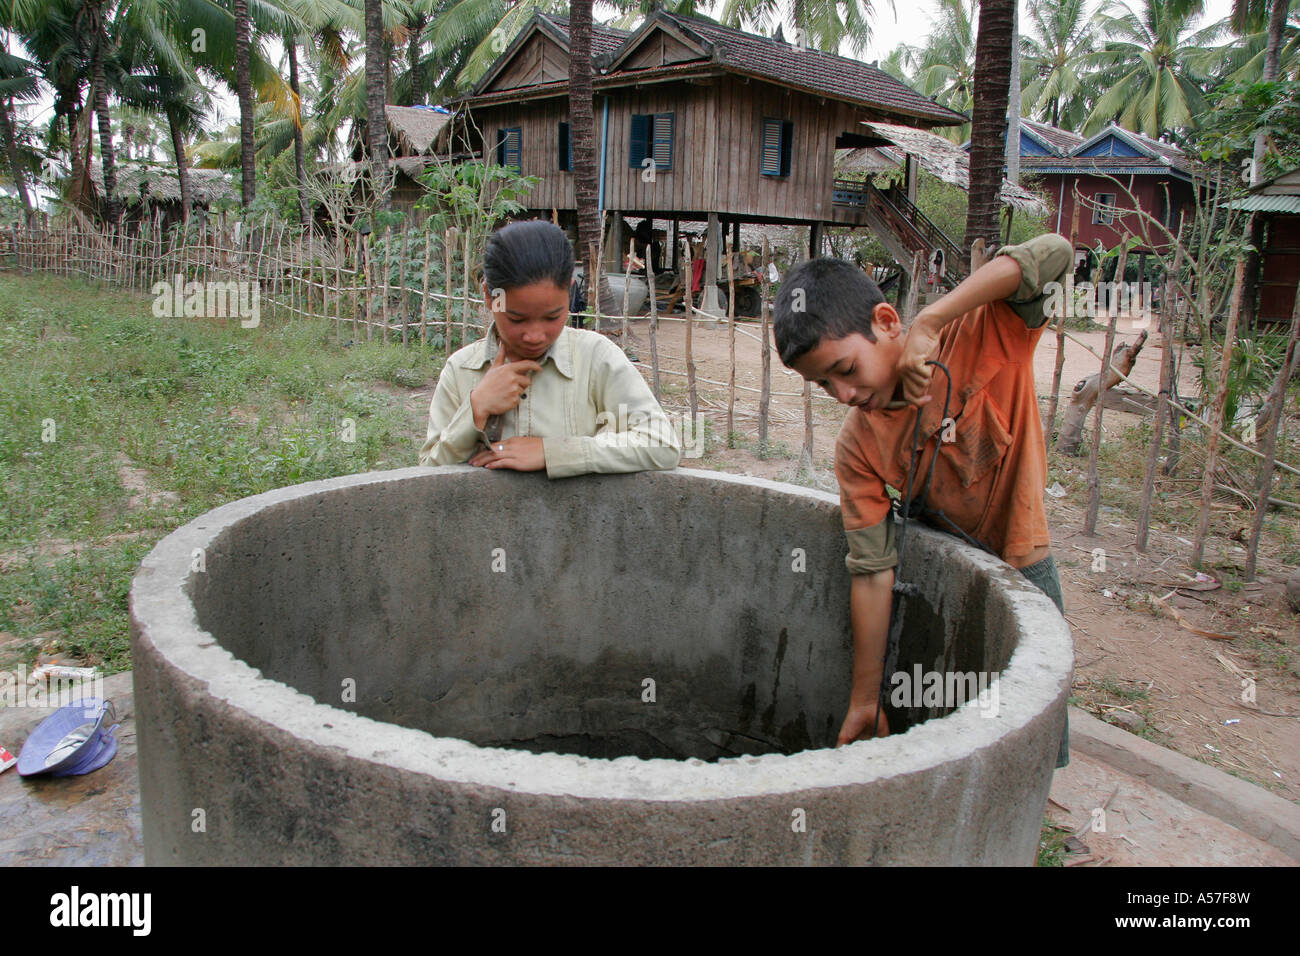 Painet je2207 cambodia day life boy 14 year old kun nob collecting water well kampot province 2006 labor labour Stock Photo